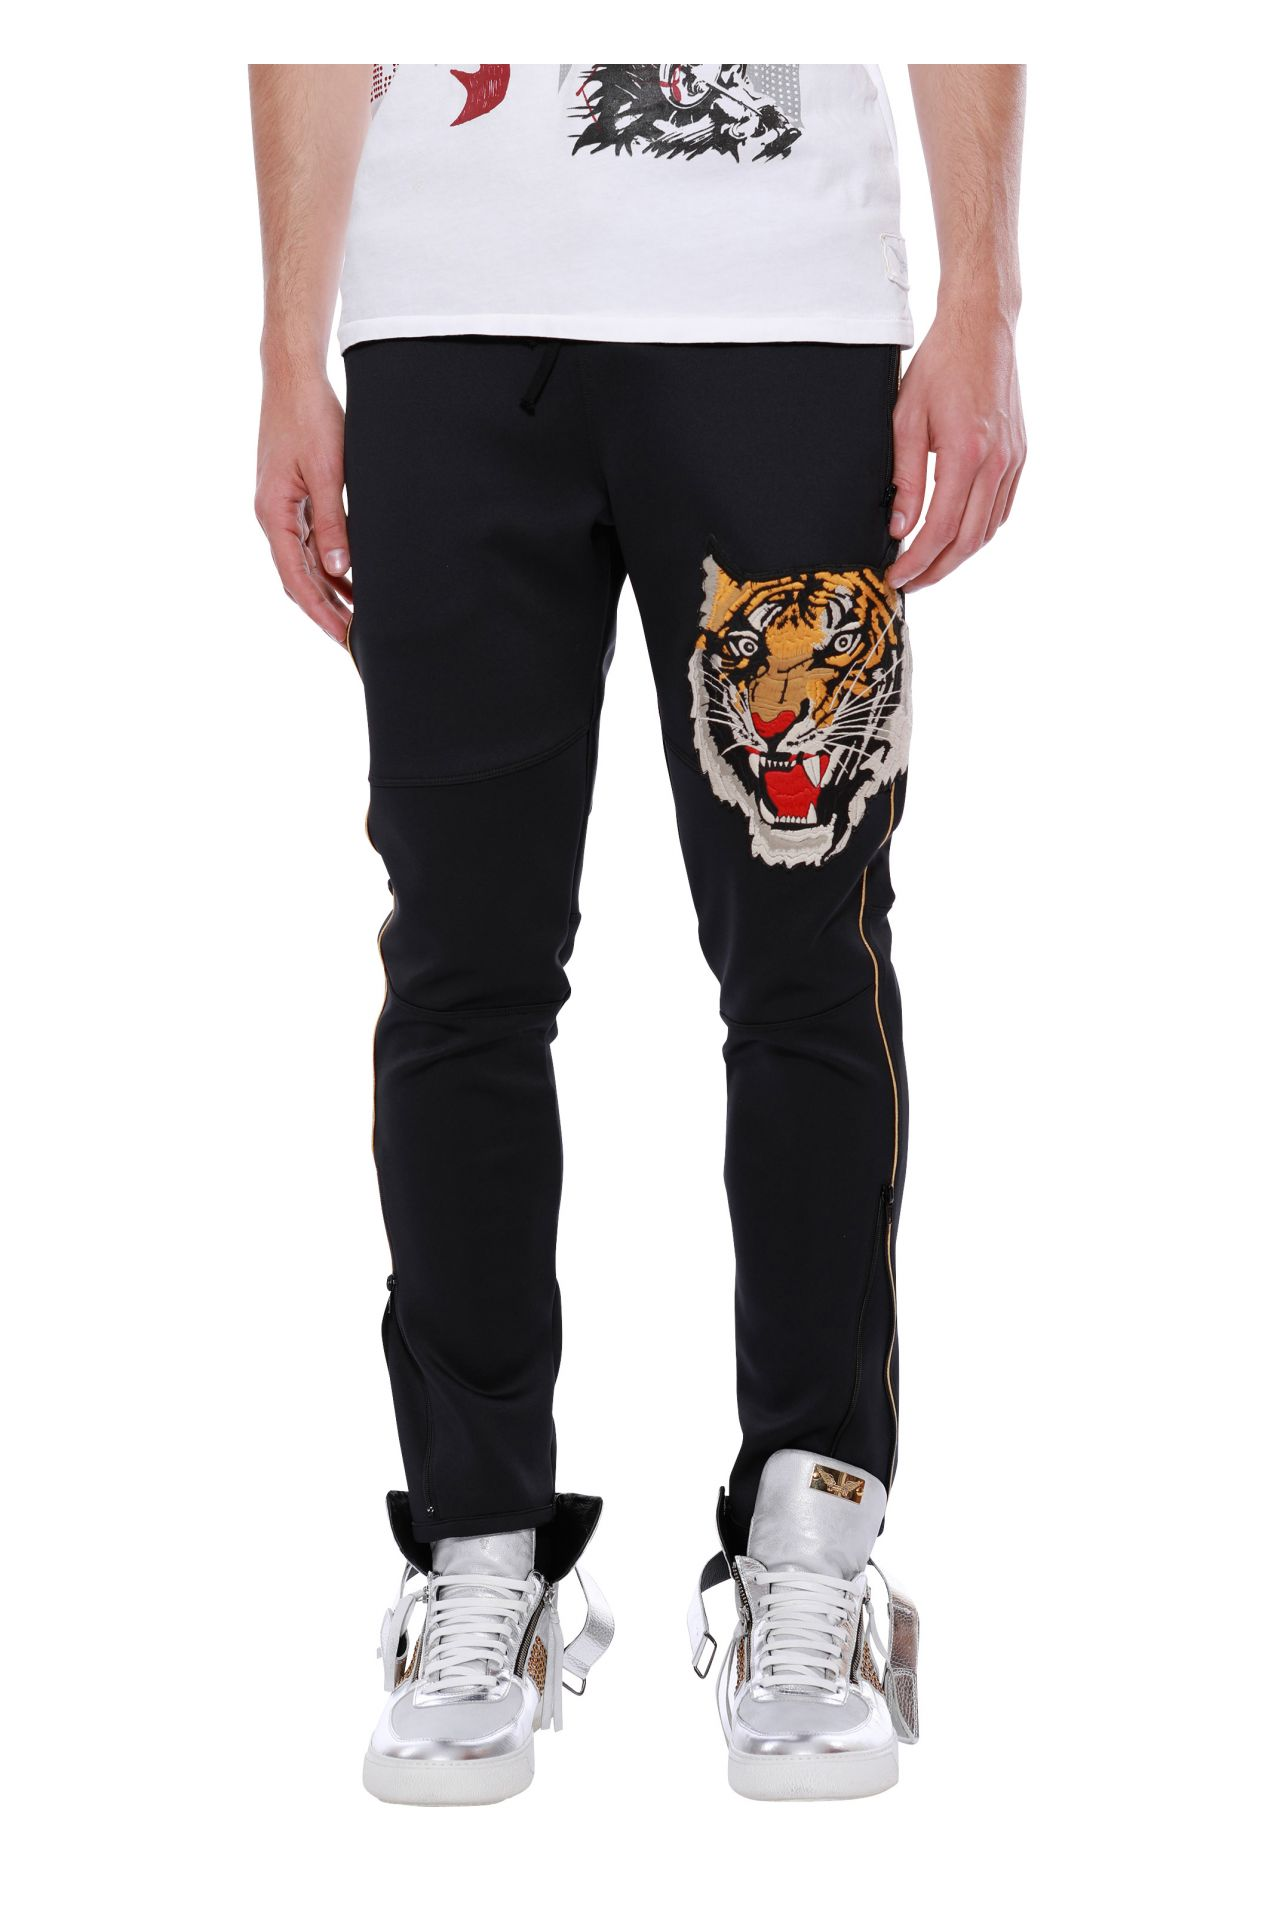 JOGGER IN BLACK WITH TIGER PATCH